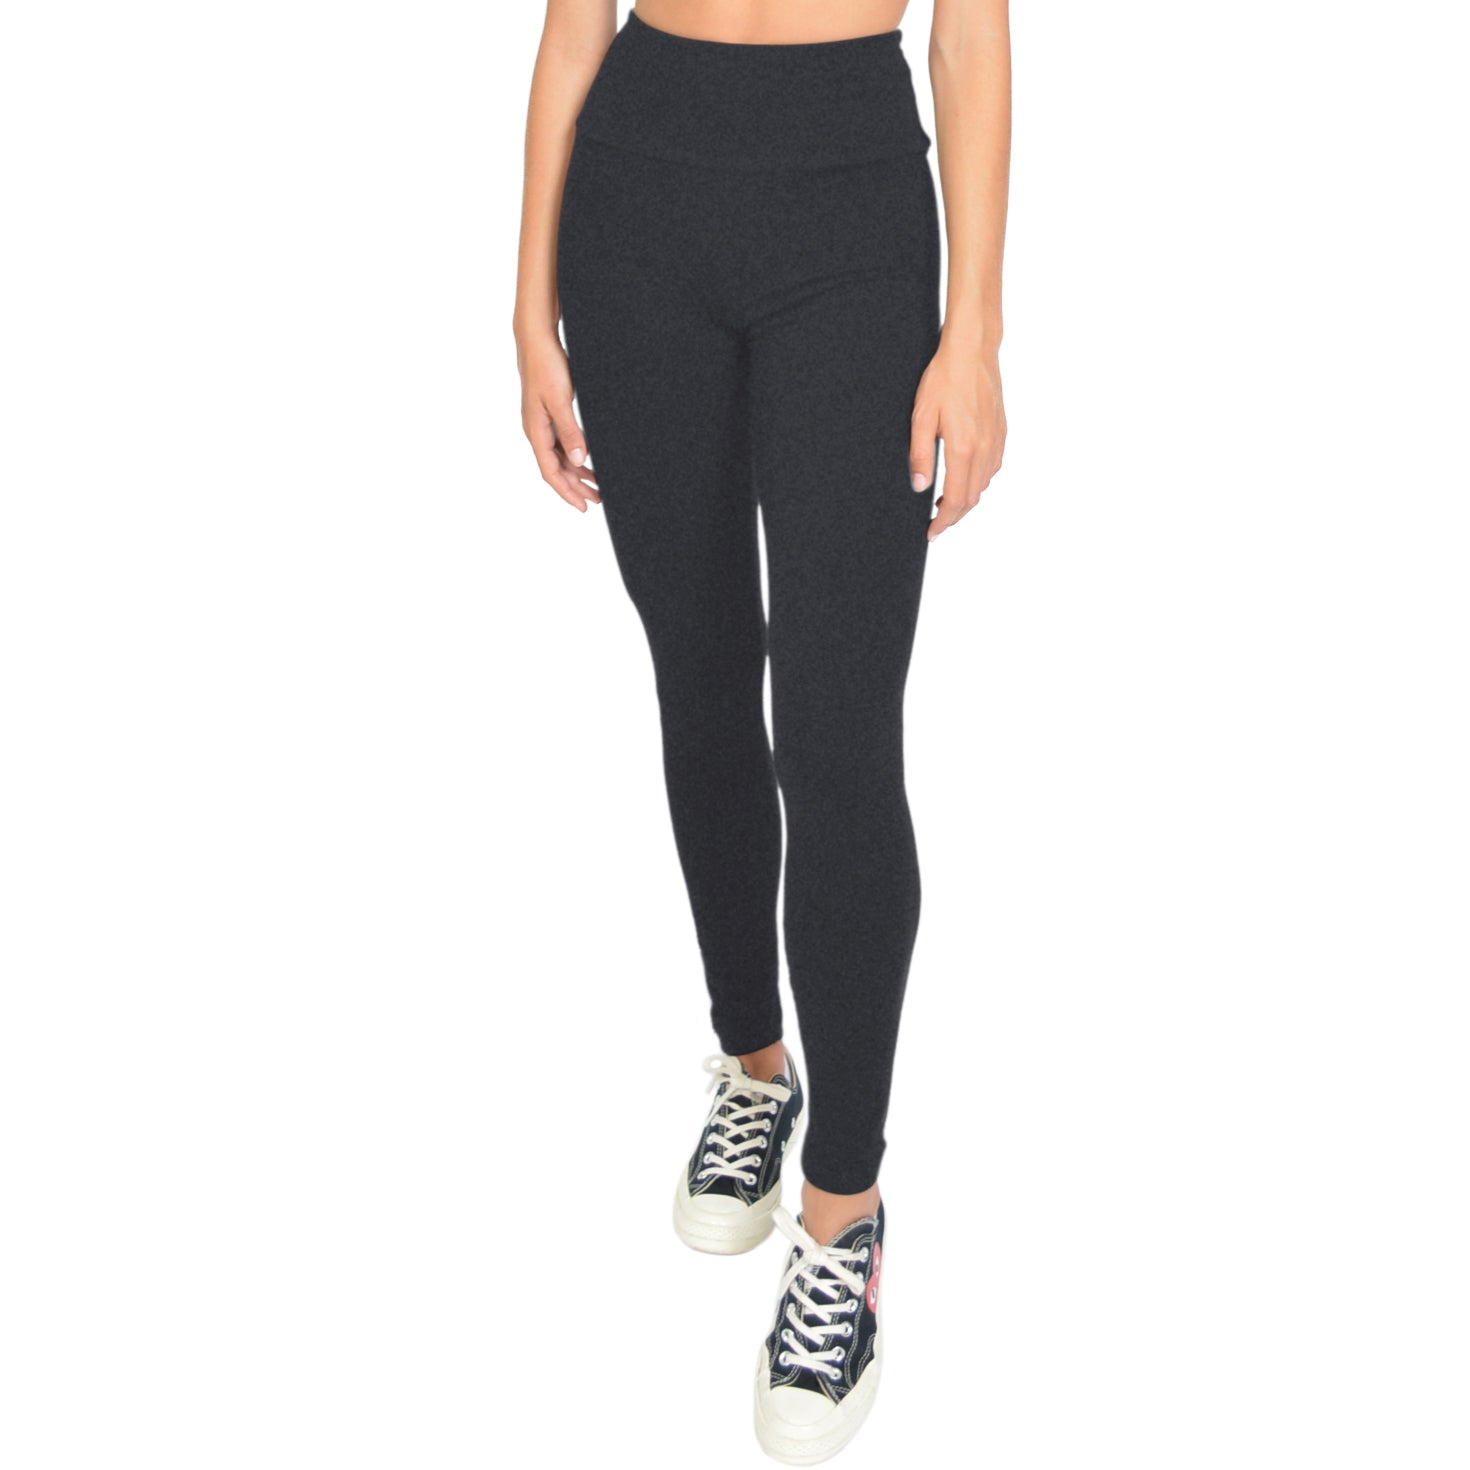 Plus Size High Waist Cotton Stretch Leggings